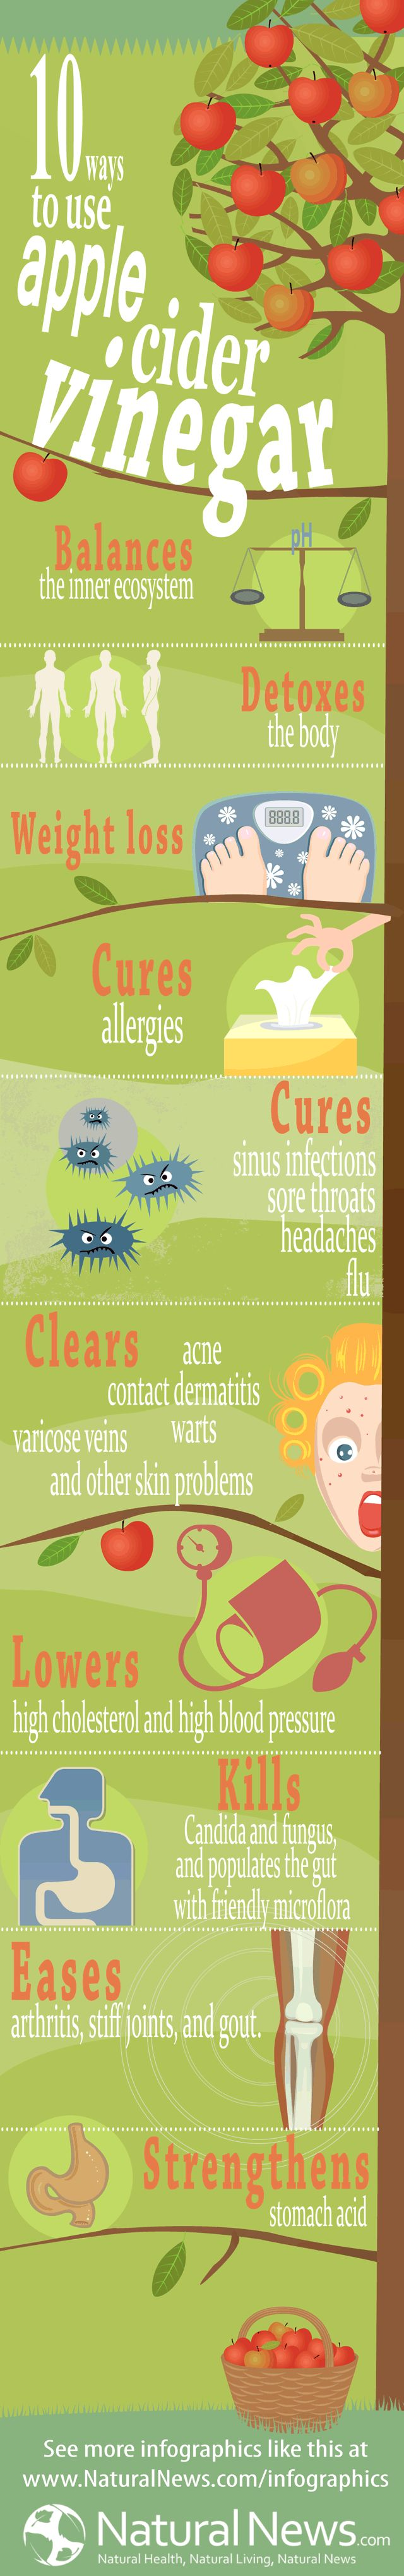 ACV: 1-2 tbs a day! more people should know this!